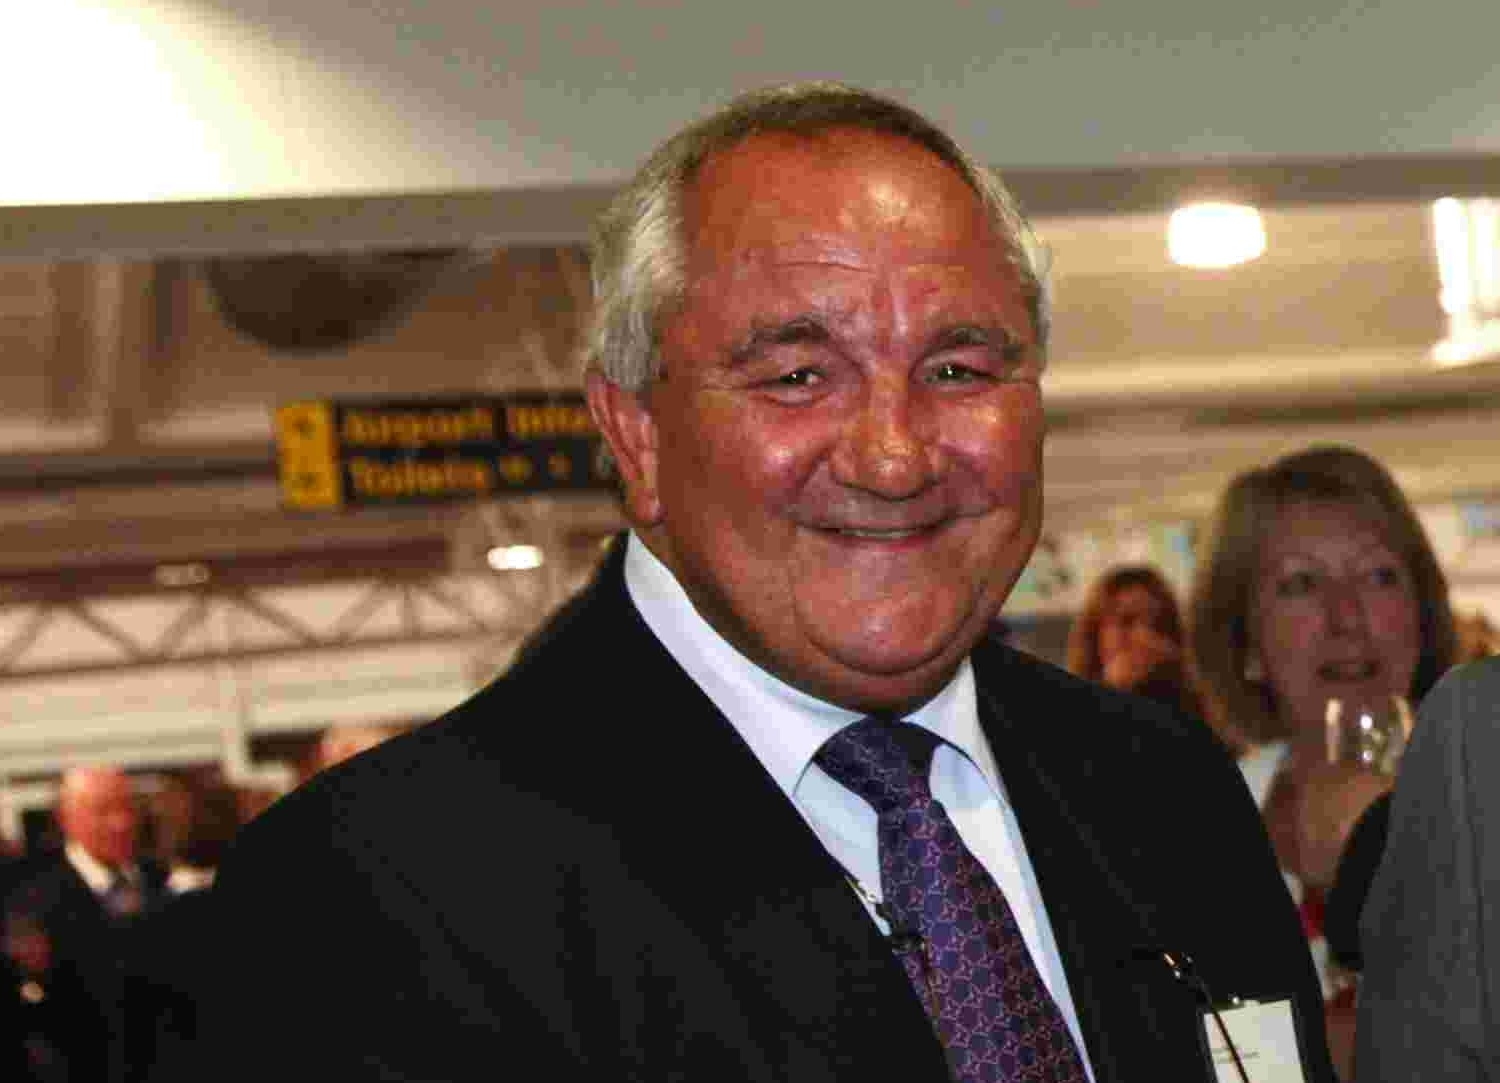 Cllr Boyd Mortimer passed away on Saturday, April 21